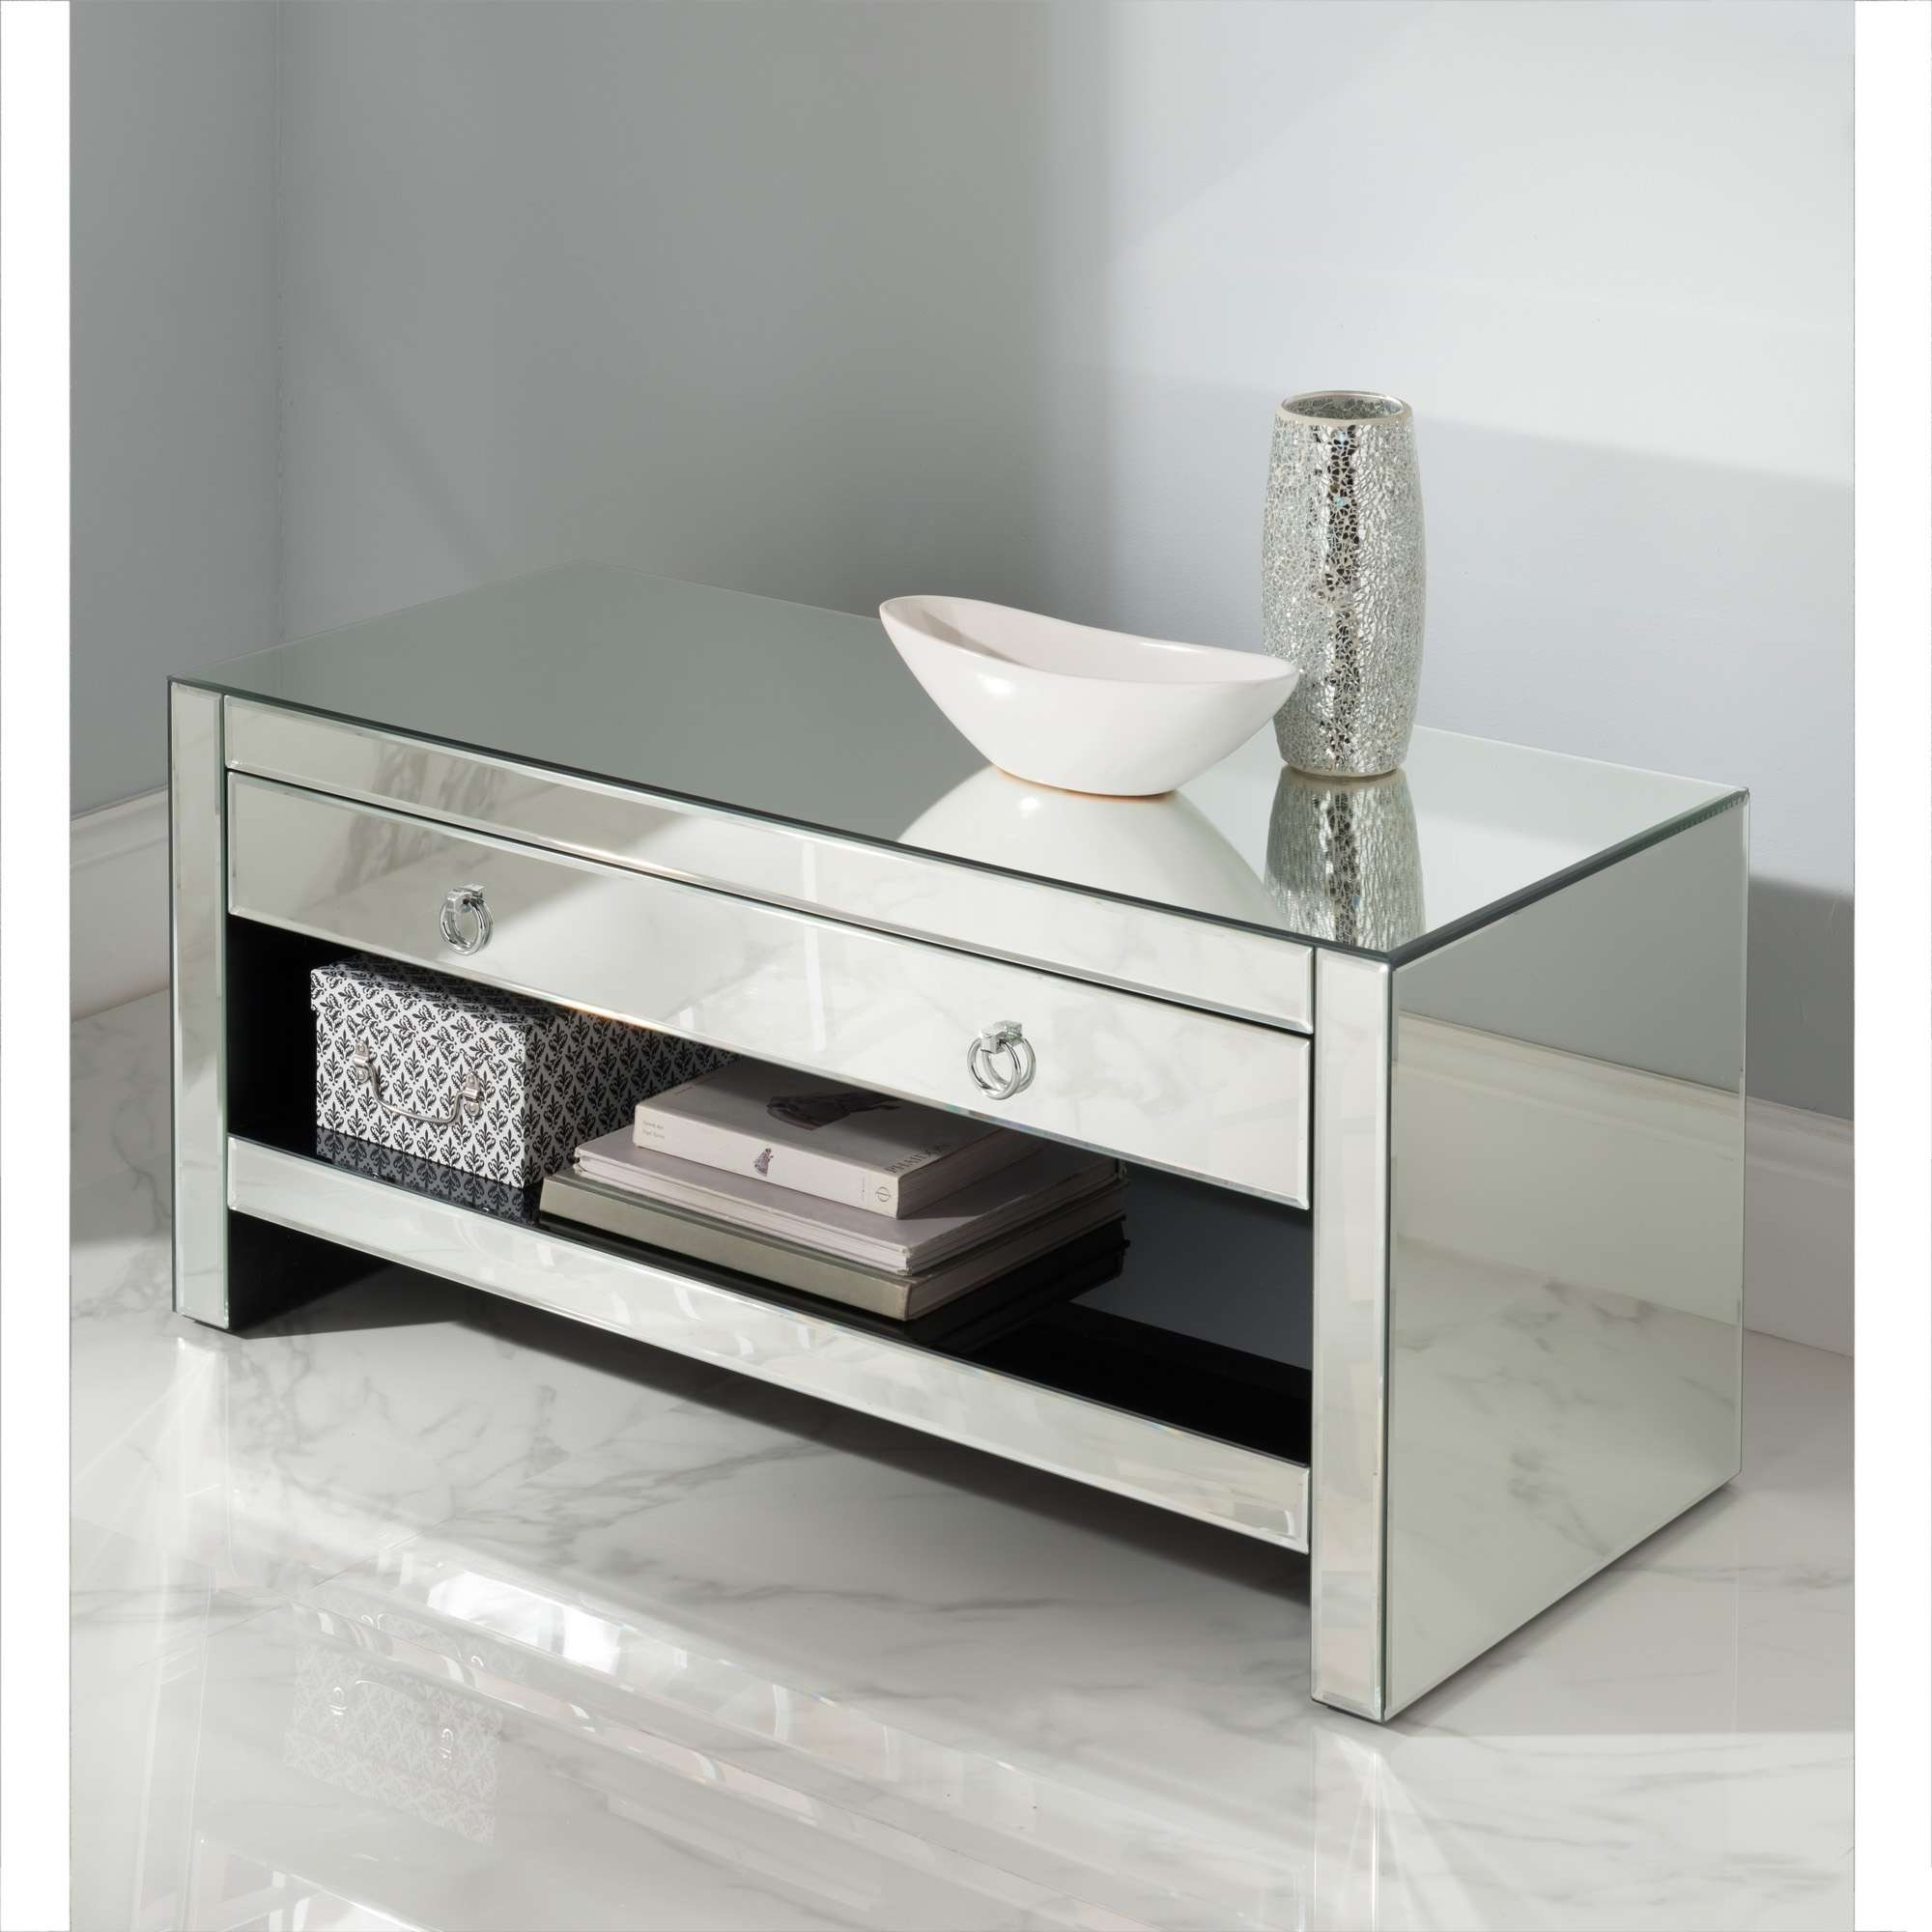 Mirrored Tv Cabinet | Glass Venetian Furniture | Homesdirect365 Throughout Mirror Tv Cabinets (View 3 of 20)